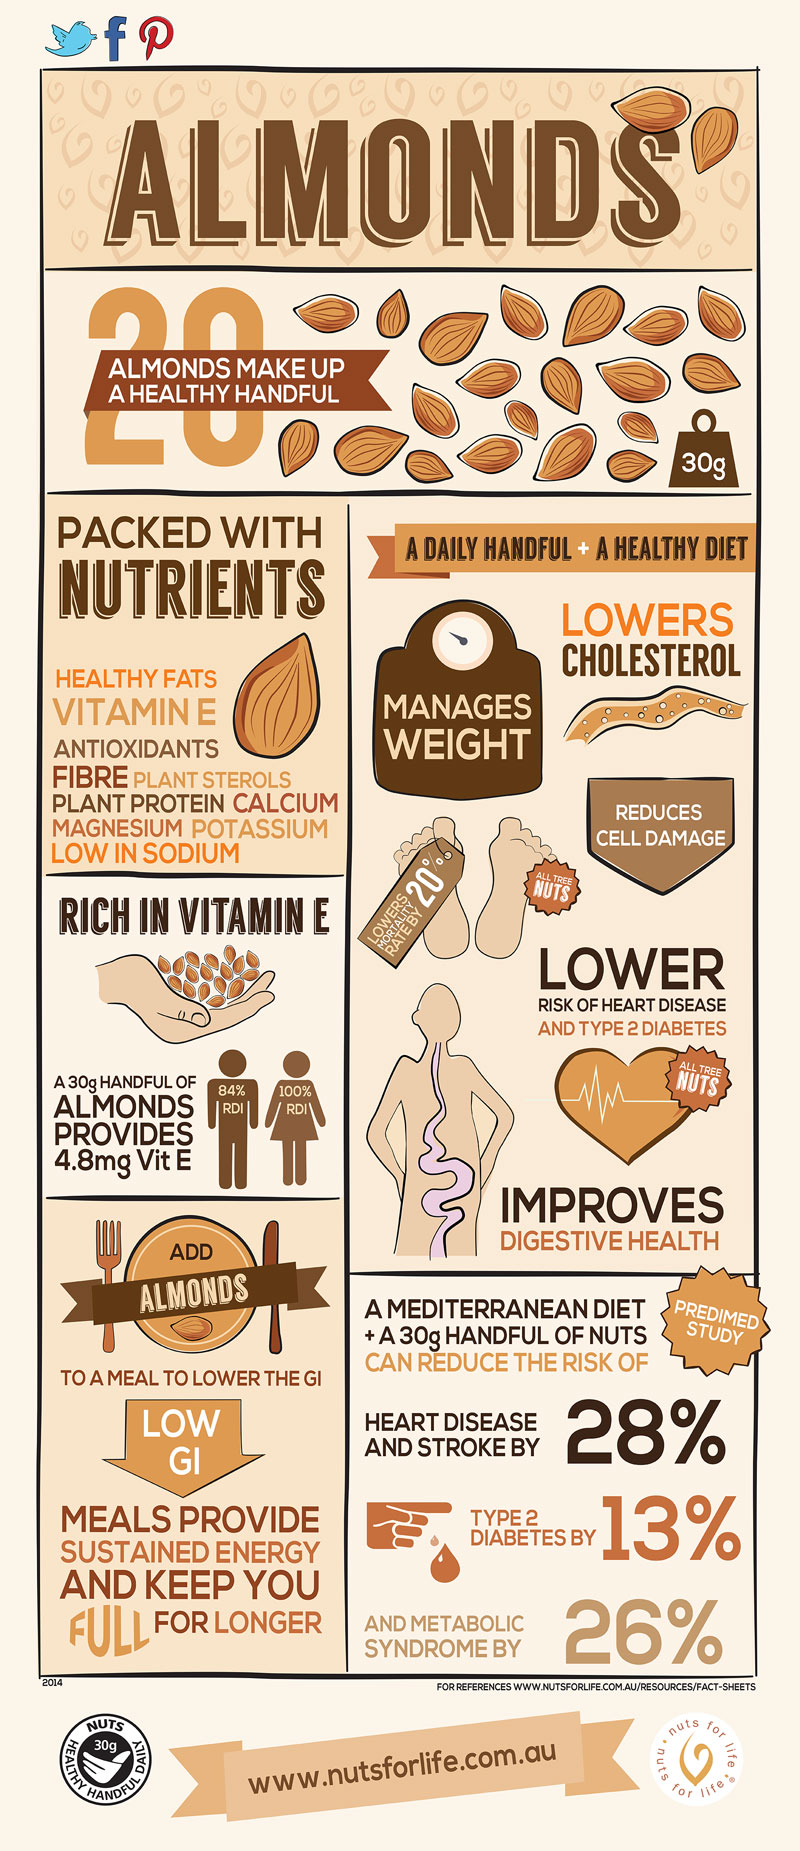 Almonds: Why You Should Eat Them - Infographic